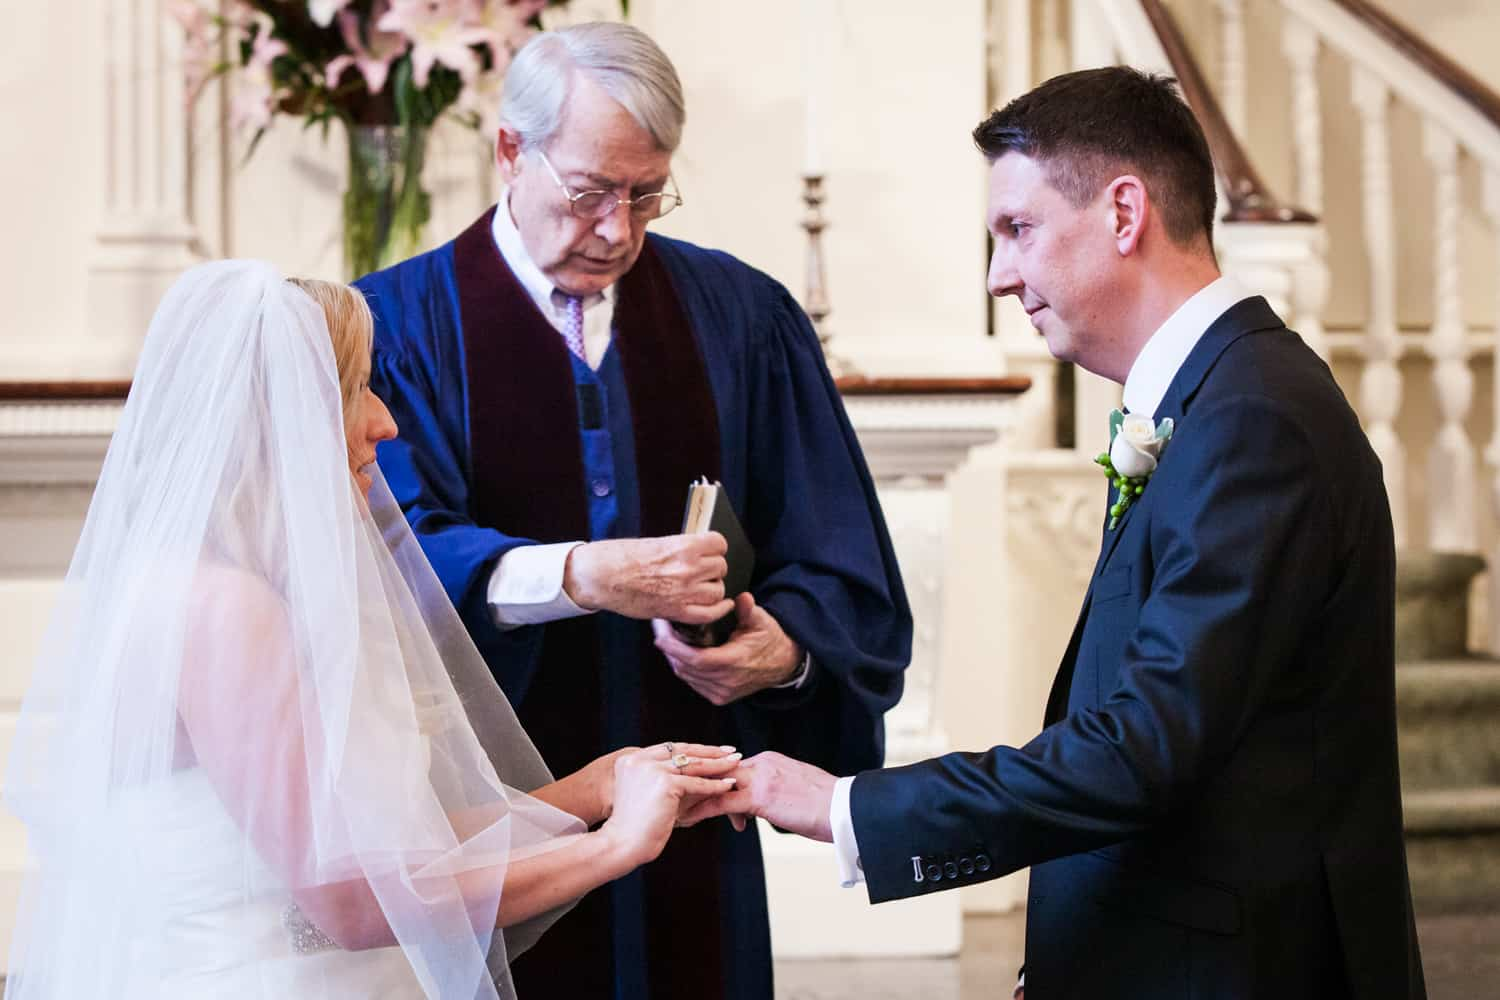 Bride putting ring on groom's finger during All Souls Unitarian Church ceremony